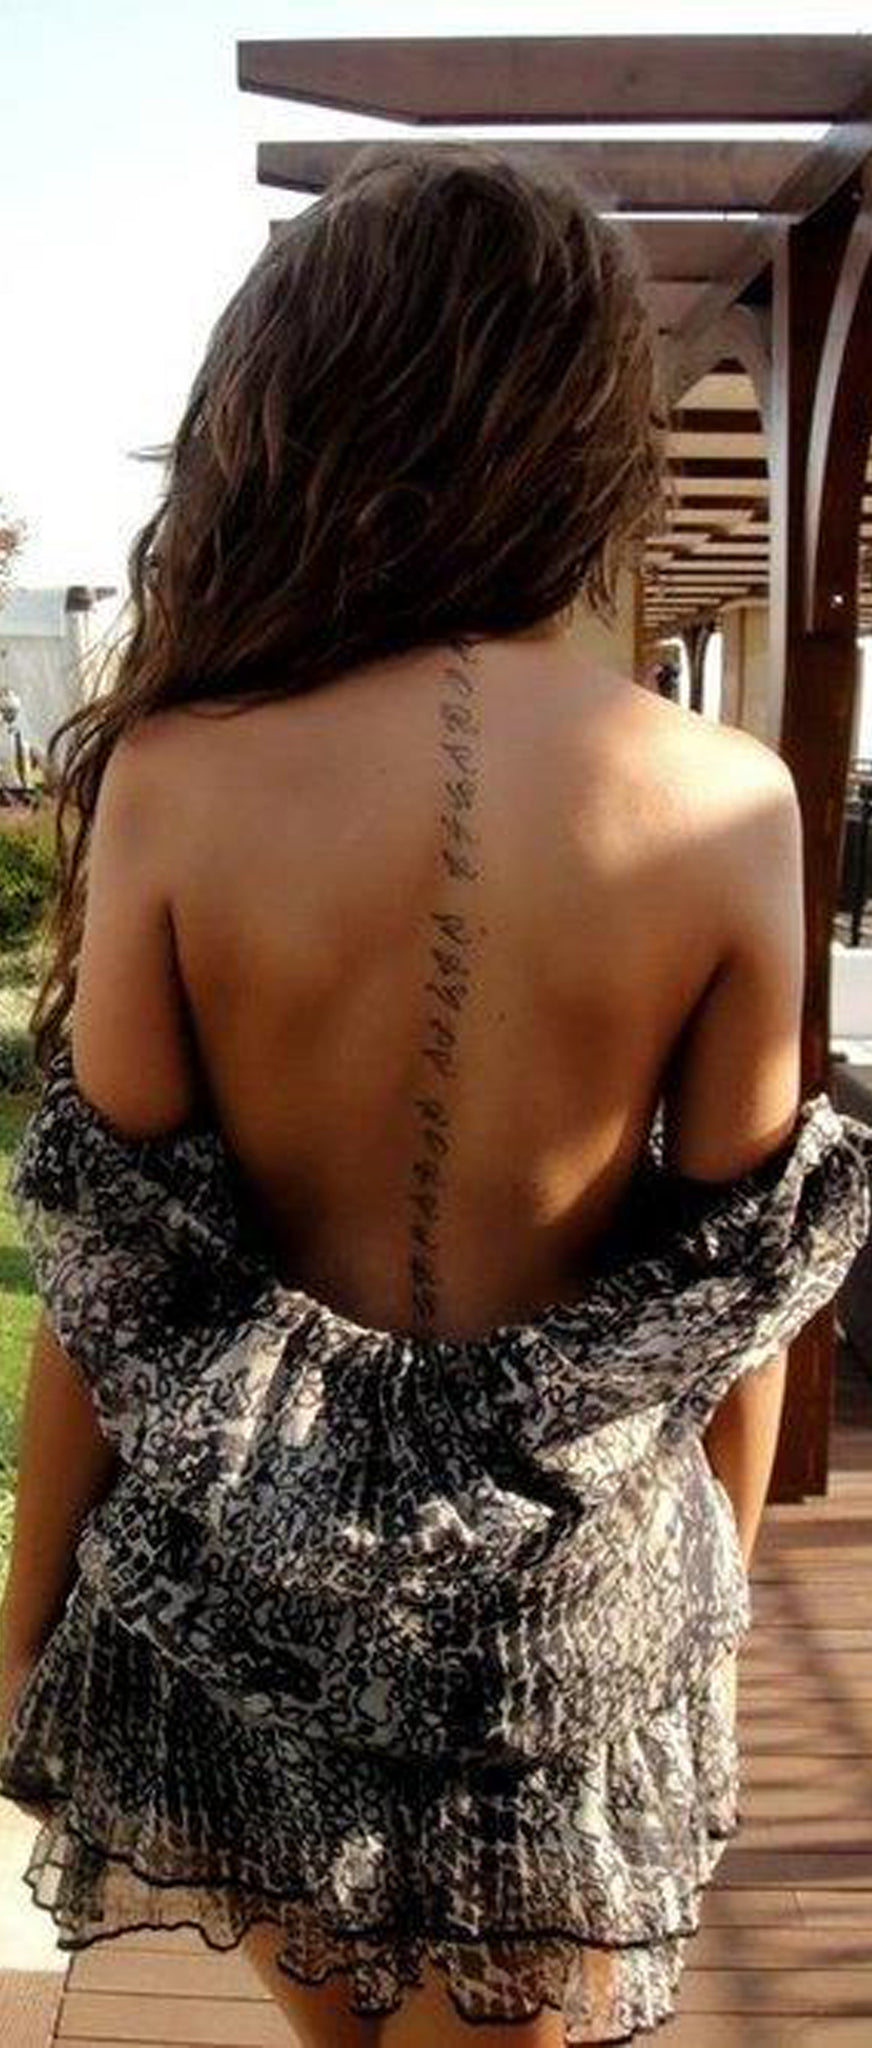 50 Inspirational Spine Tattoo Ideas For Women With Meaning Mybodiart